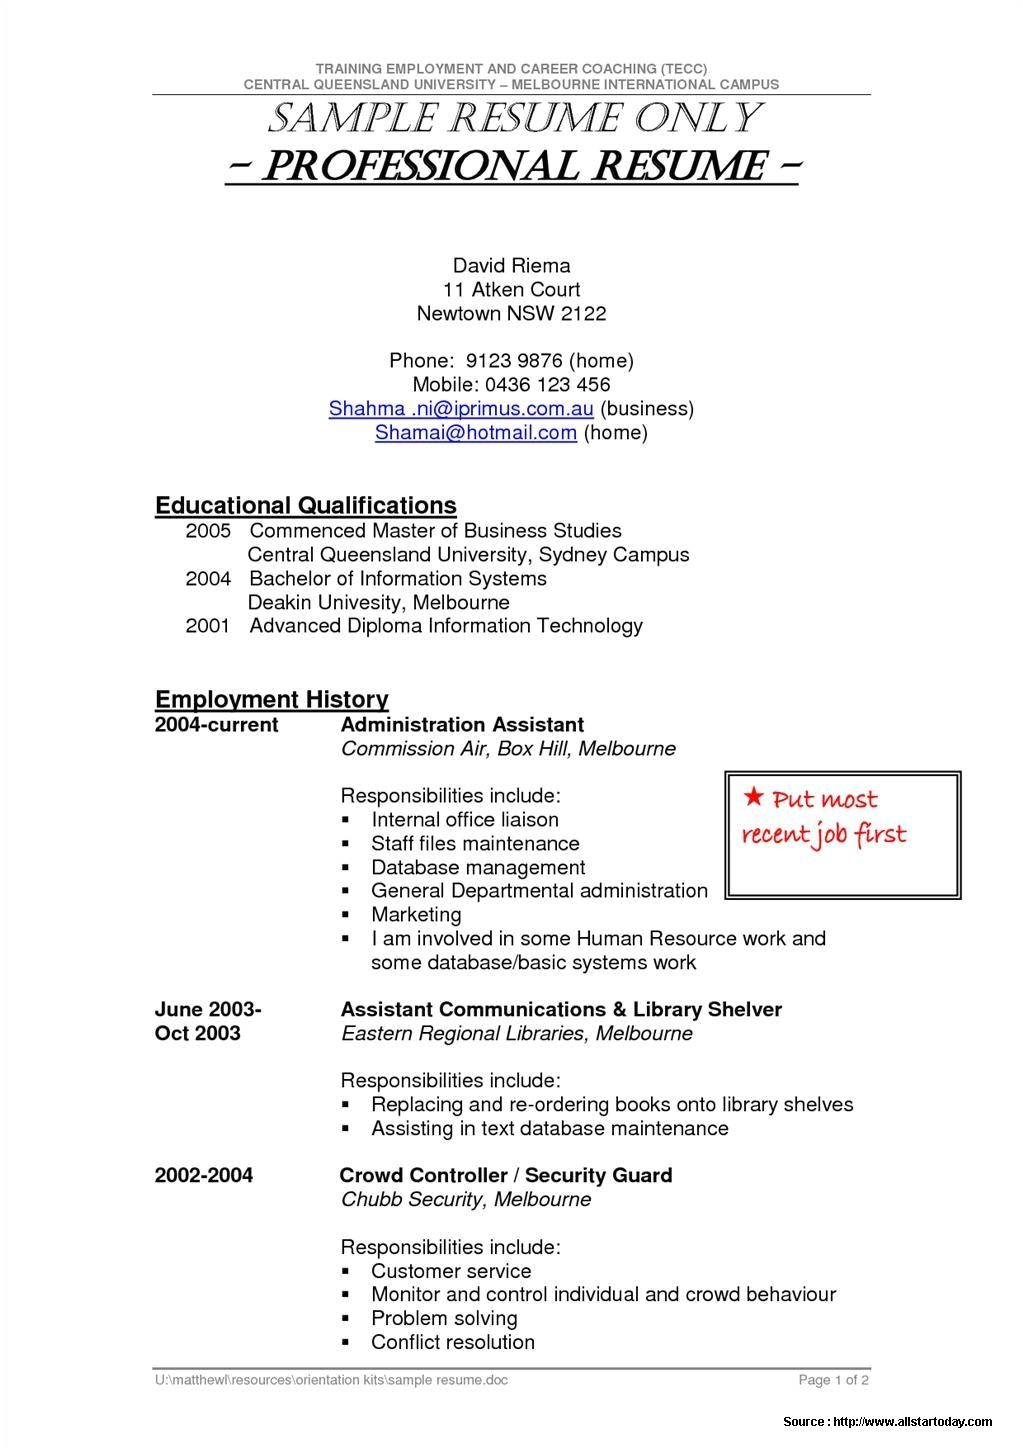 sample resume for security guard pdf